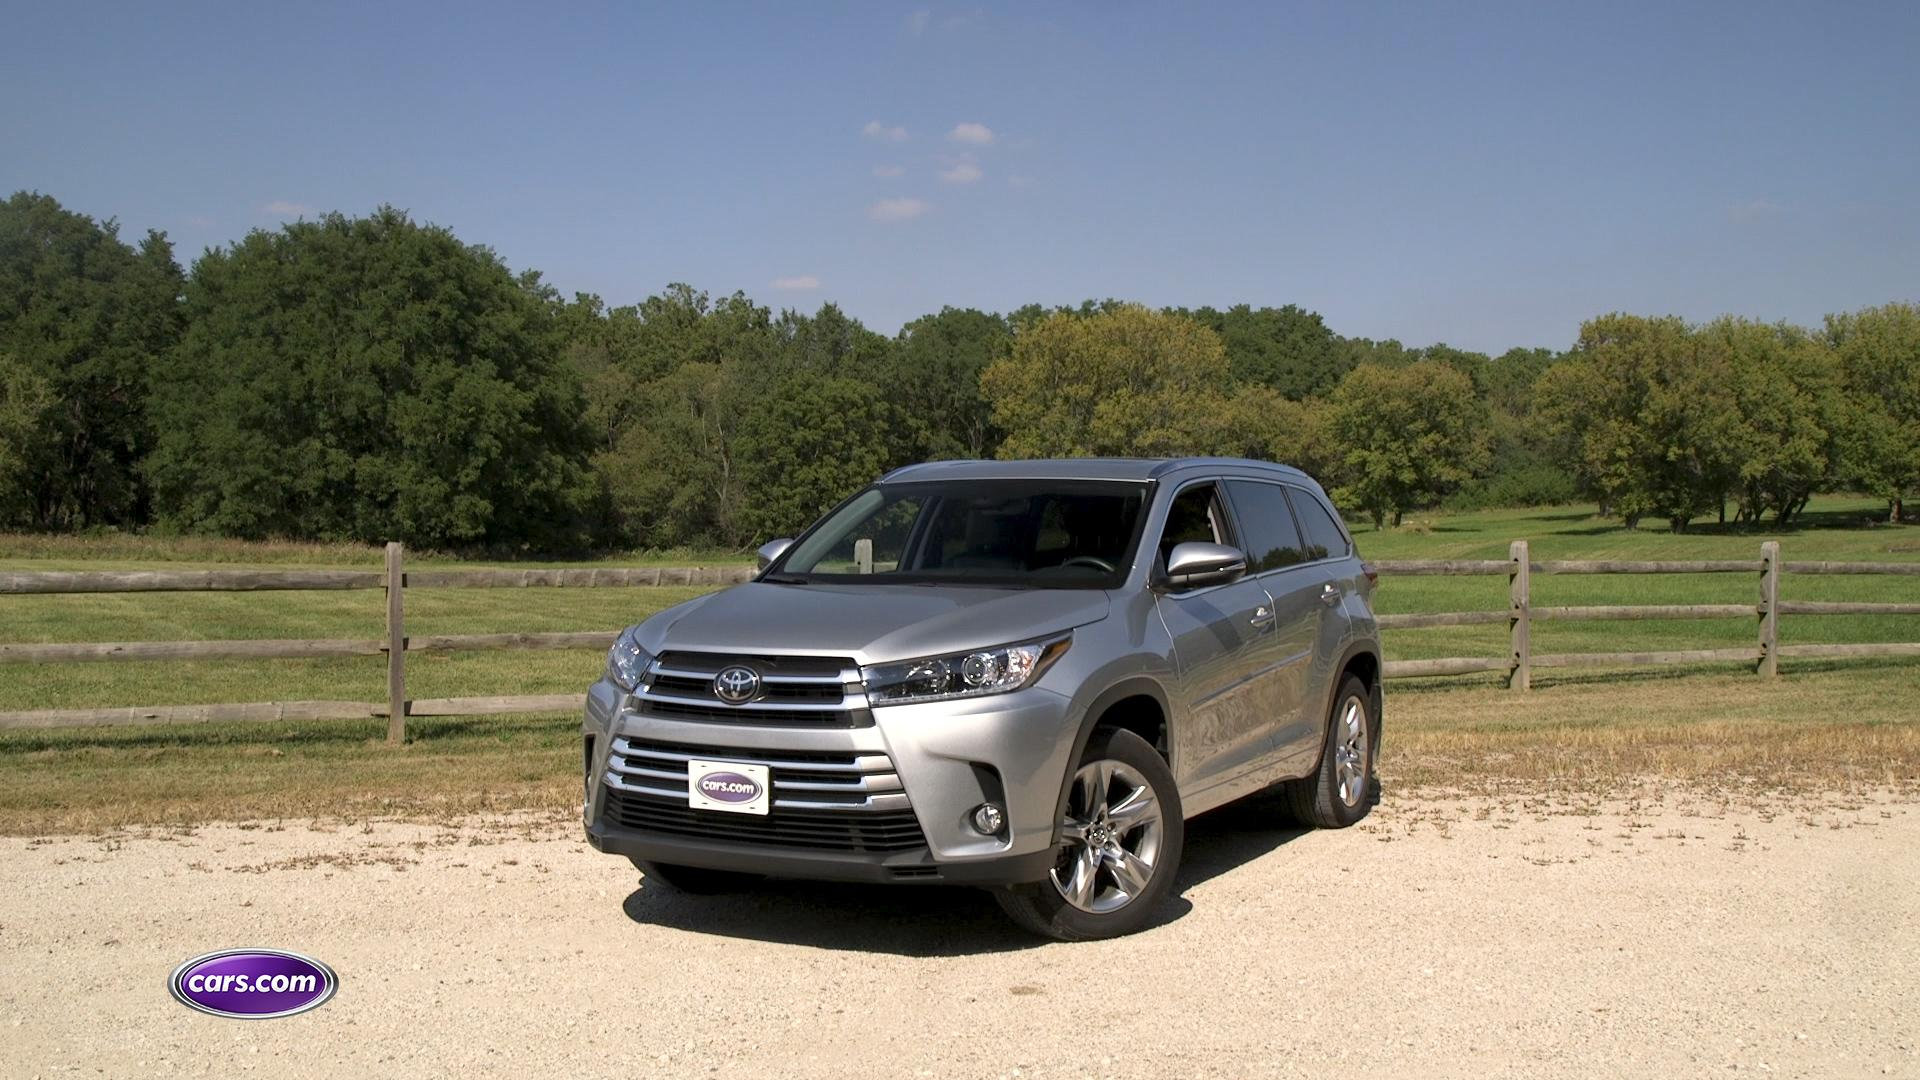 Video: 2017 Toyota Highlander Review — Cars.com